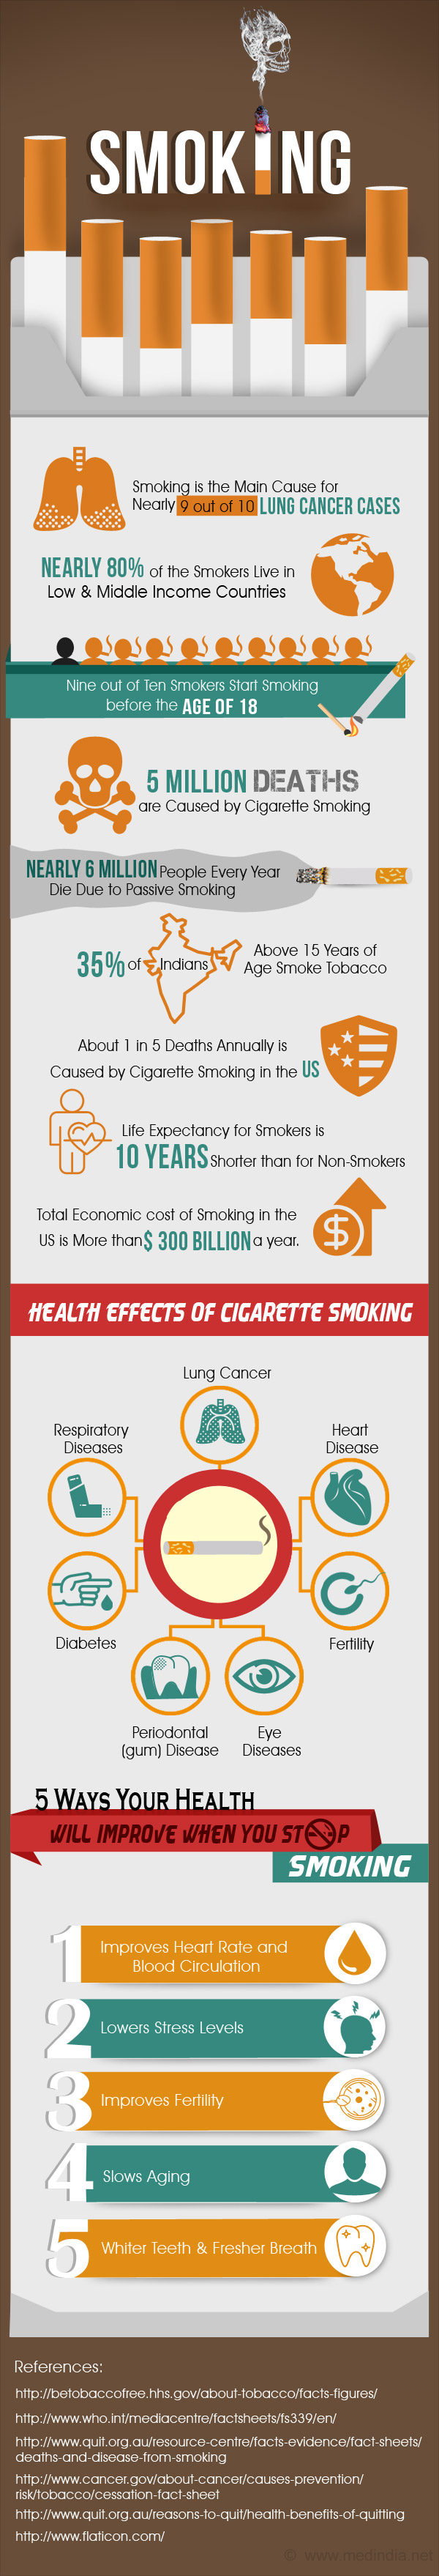 Smoking - Infographic